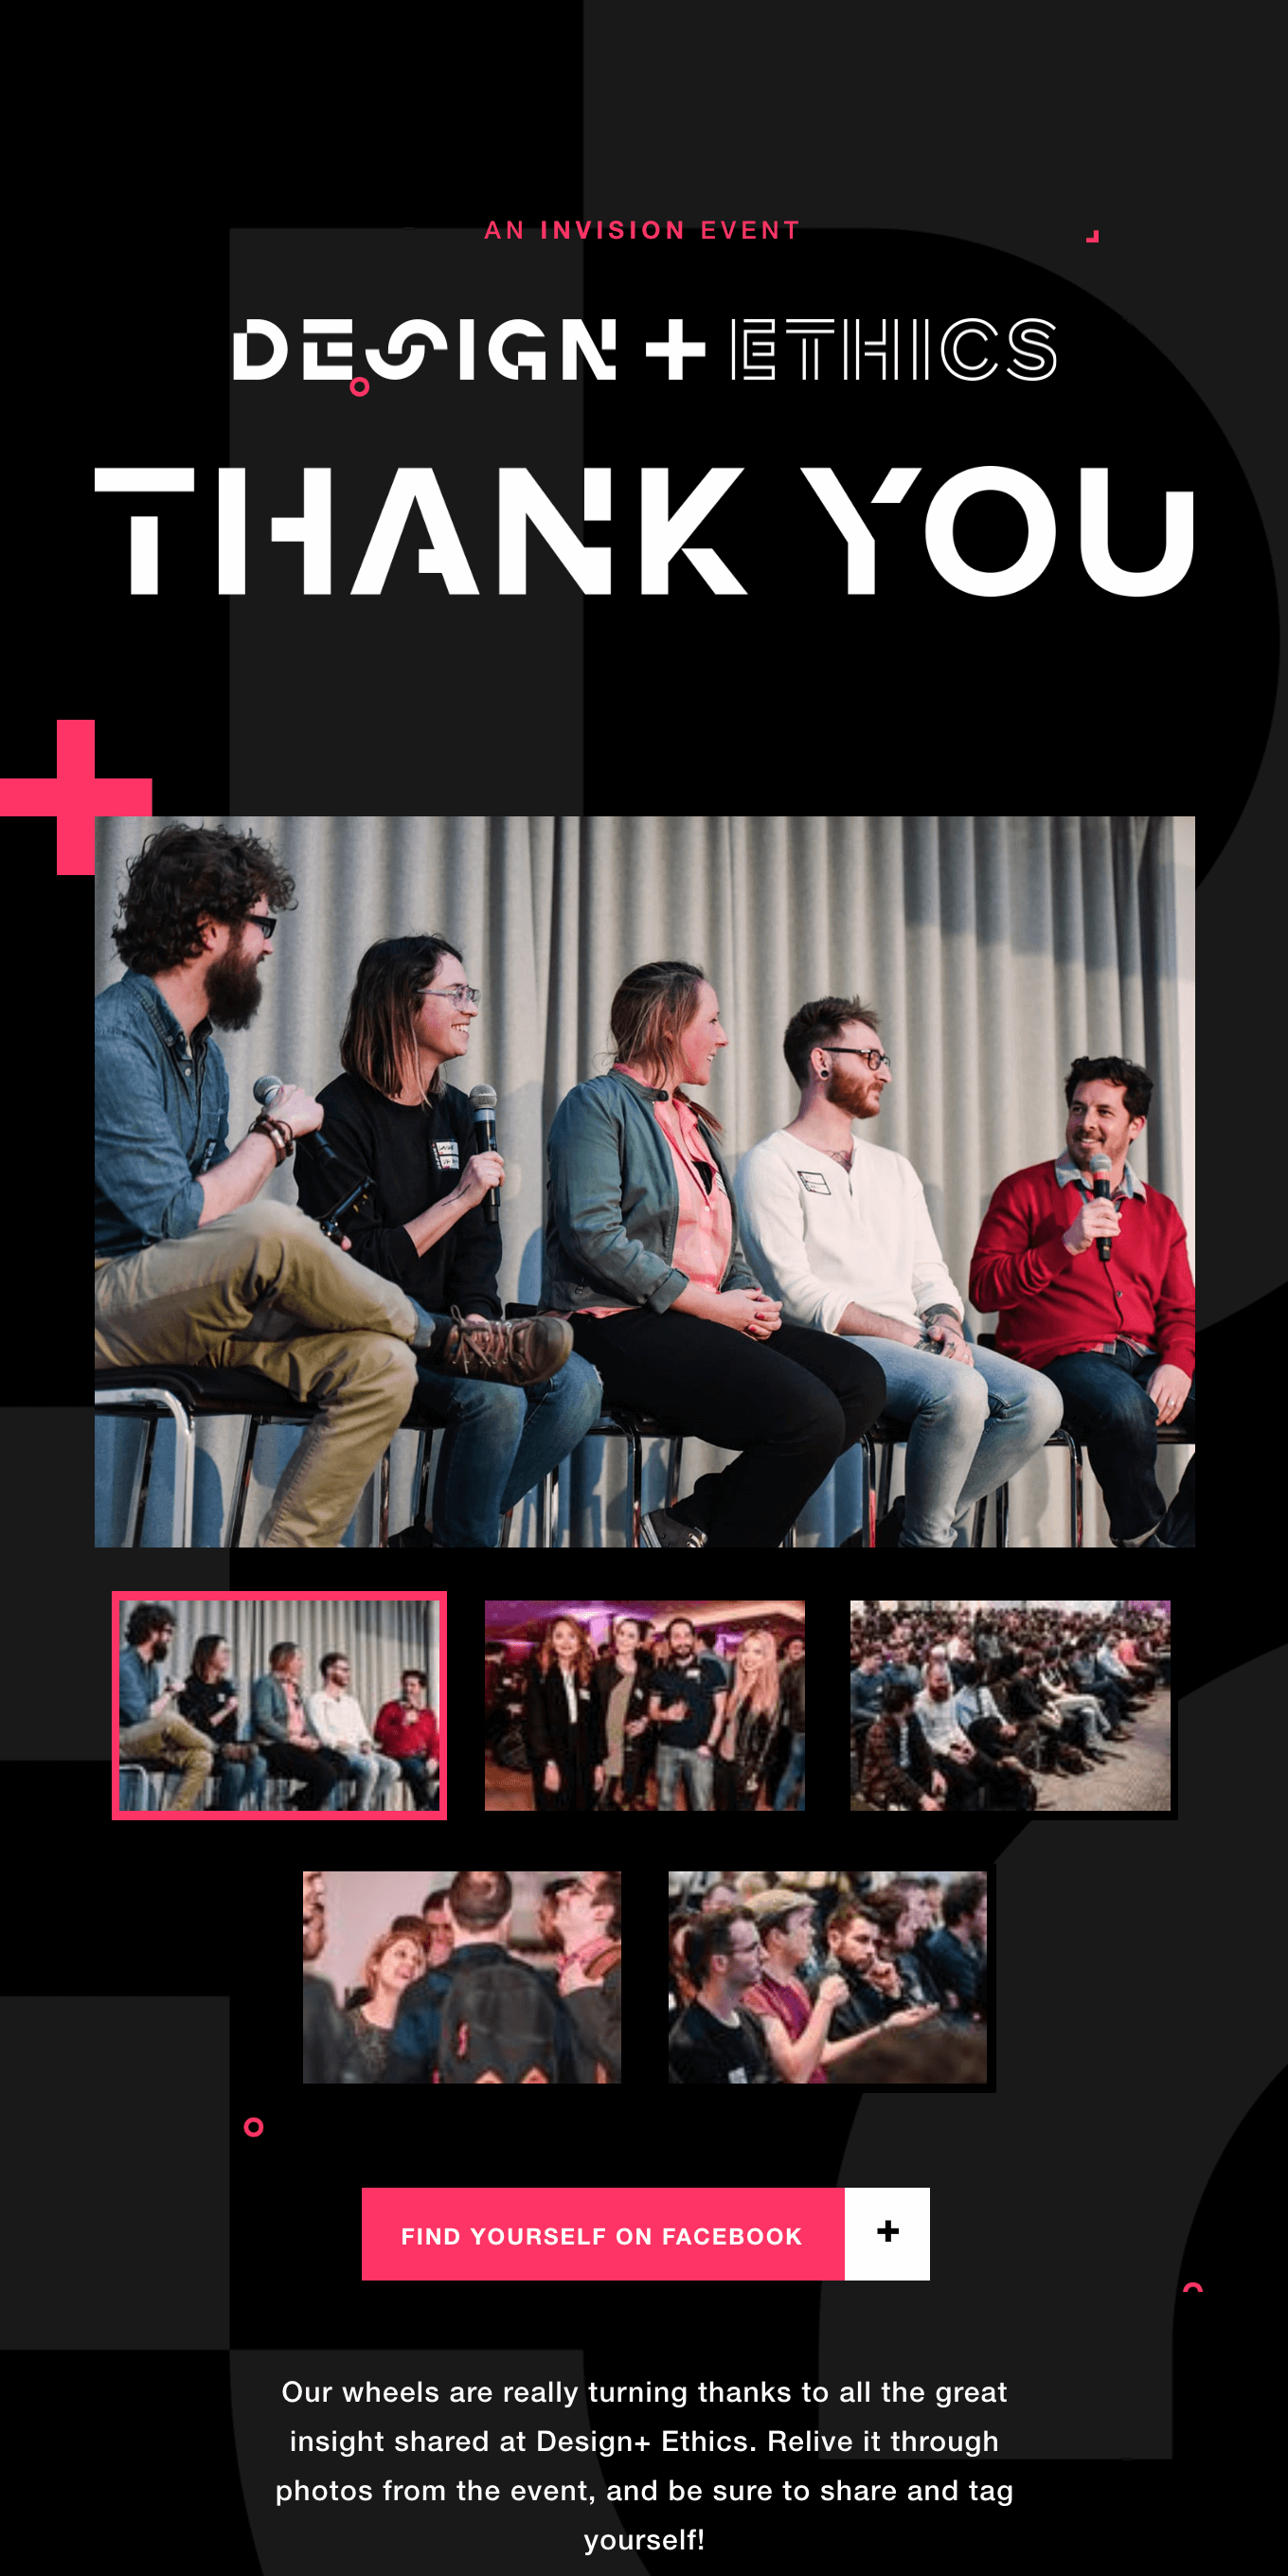 Thanks for coming to Design+ Ethics! Check out professional shots from the event